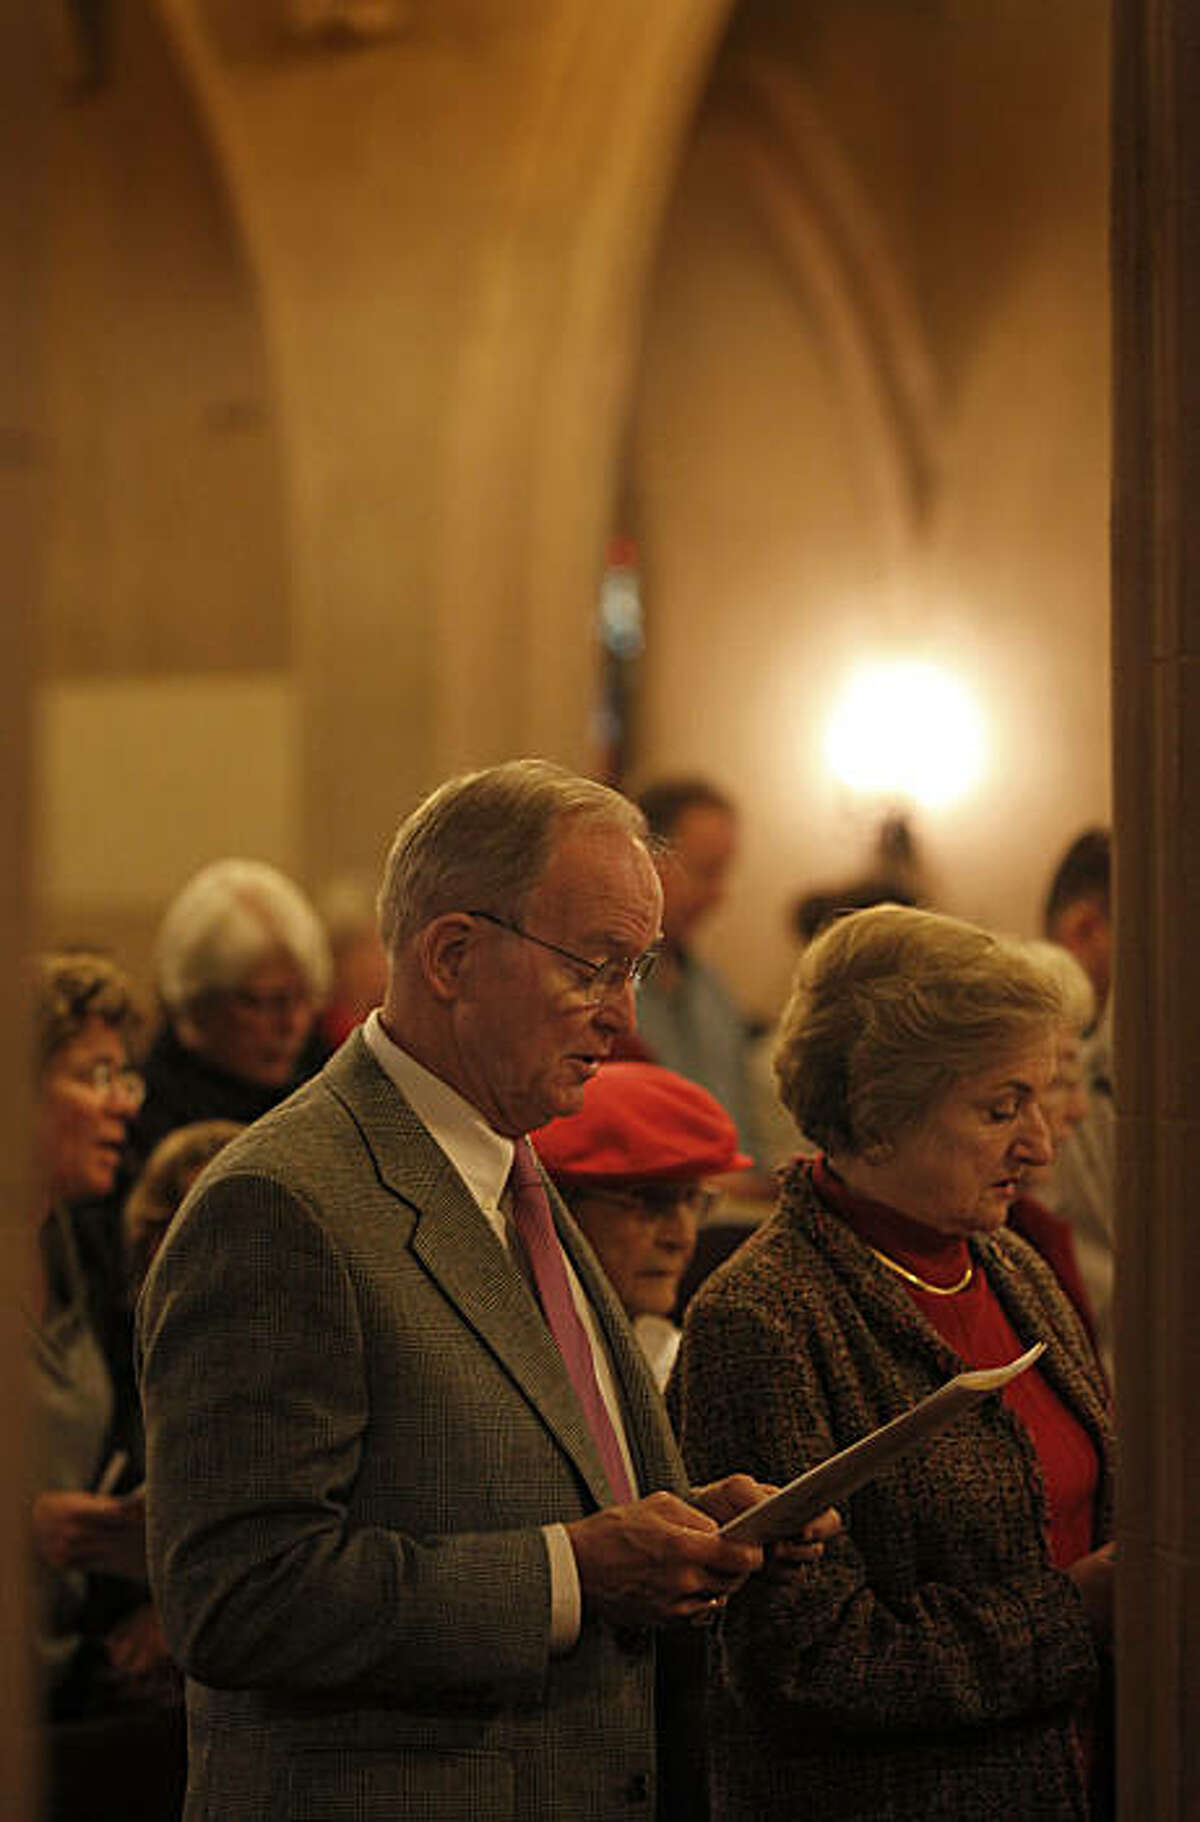 Bishop Swing and his wife Mary Swing sing during Episcopal services at St. Paul's. William Swing, the former Bishop of the Episcopal Church in California for 27 years, is enjoying his time away from the spotlight. He attends services at St. Paul's Episcopal Church in Burlingame, Calif. Sunday December 19, 2010 with his wife Mary Swing.